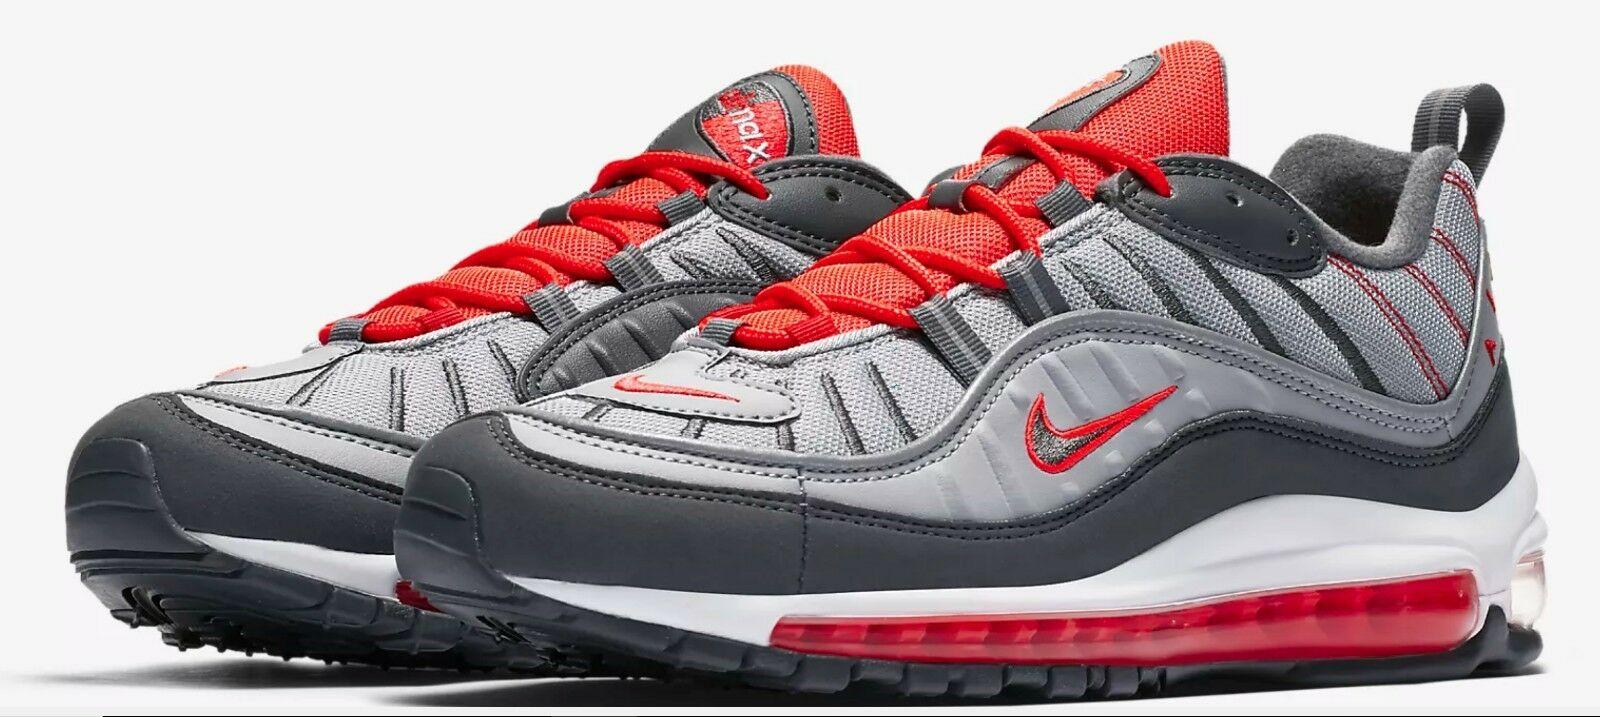 NIKE AIR MAX 98 WOLF GREY DARK GREY CRIMSON RUNNING MEN SIZe 10  640744-006